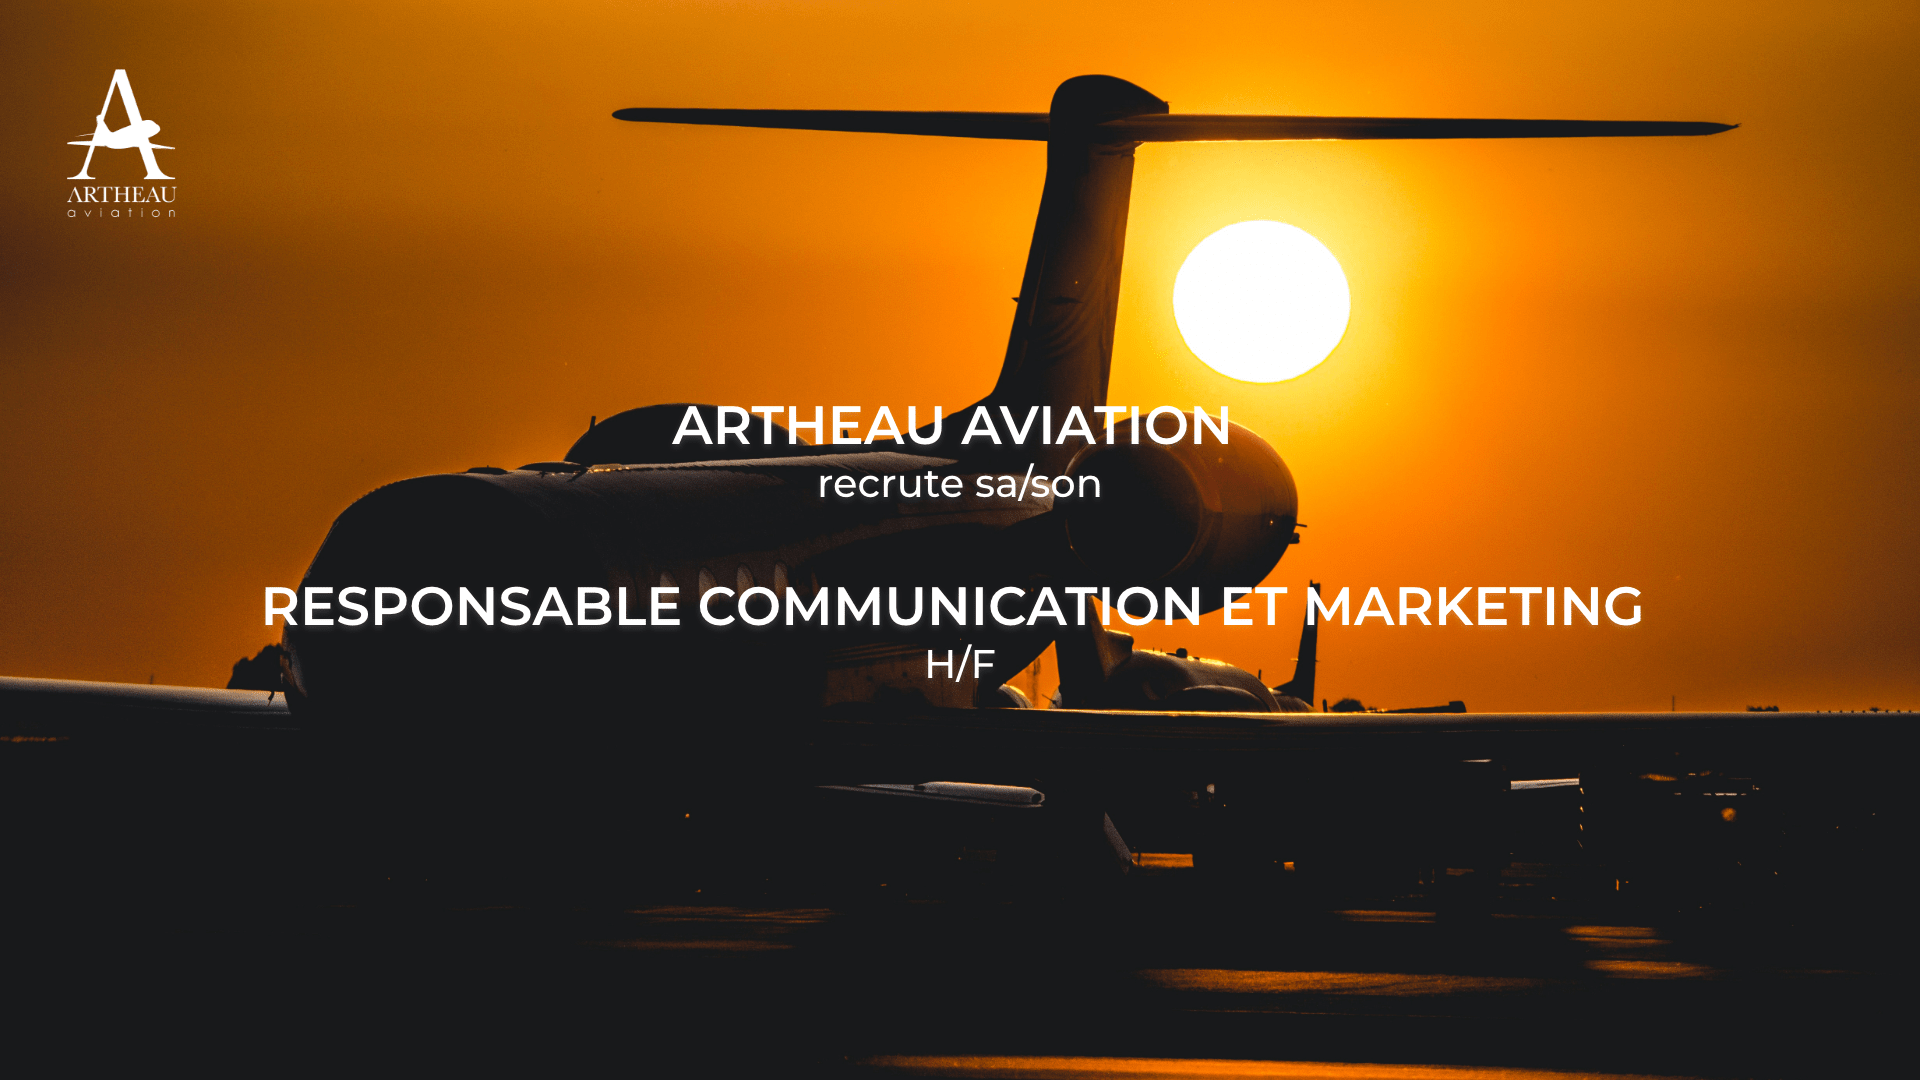 Artheau Aviation cherche sa/son futur Responsable Communication et Marketing (H/F)